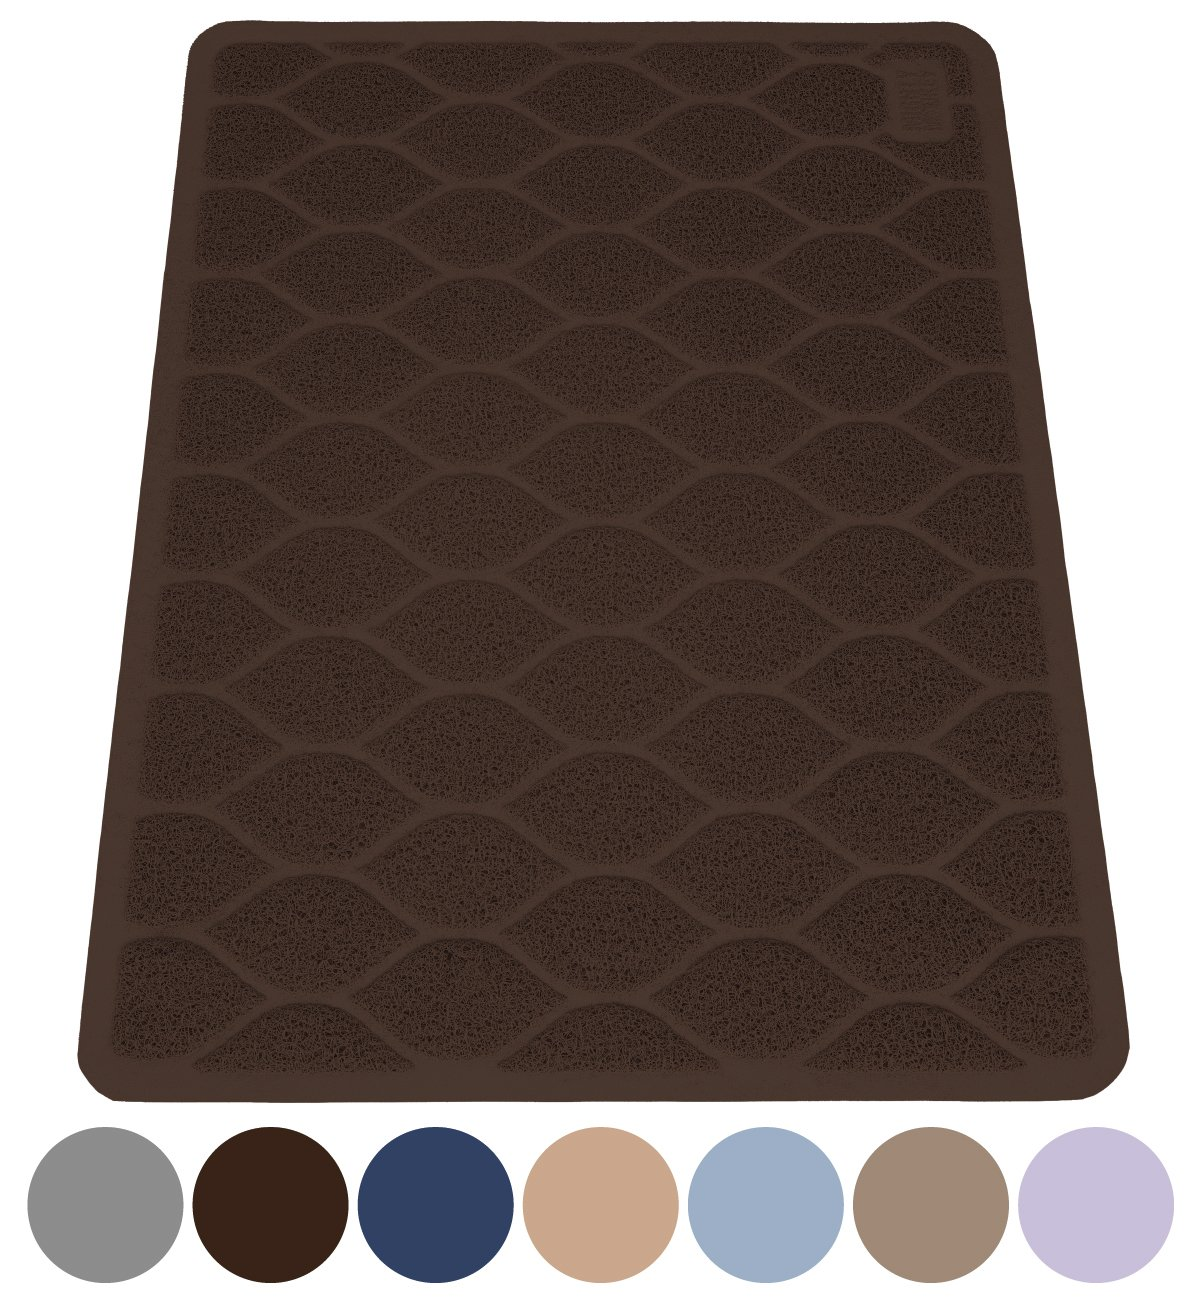 MIGHTY MONKEY Premium Cat Litter Trapping Mats, Phthalate Free, Best Scatter Control, Jumbo XL Sizes (35'' x 23''), Mat Traps Litter, Easy to Clean, Soft on Kitty Paws (Mocha)